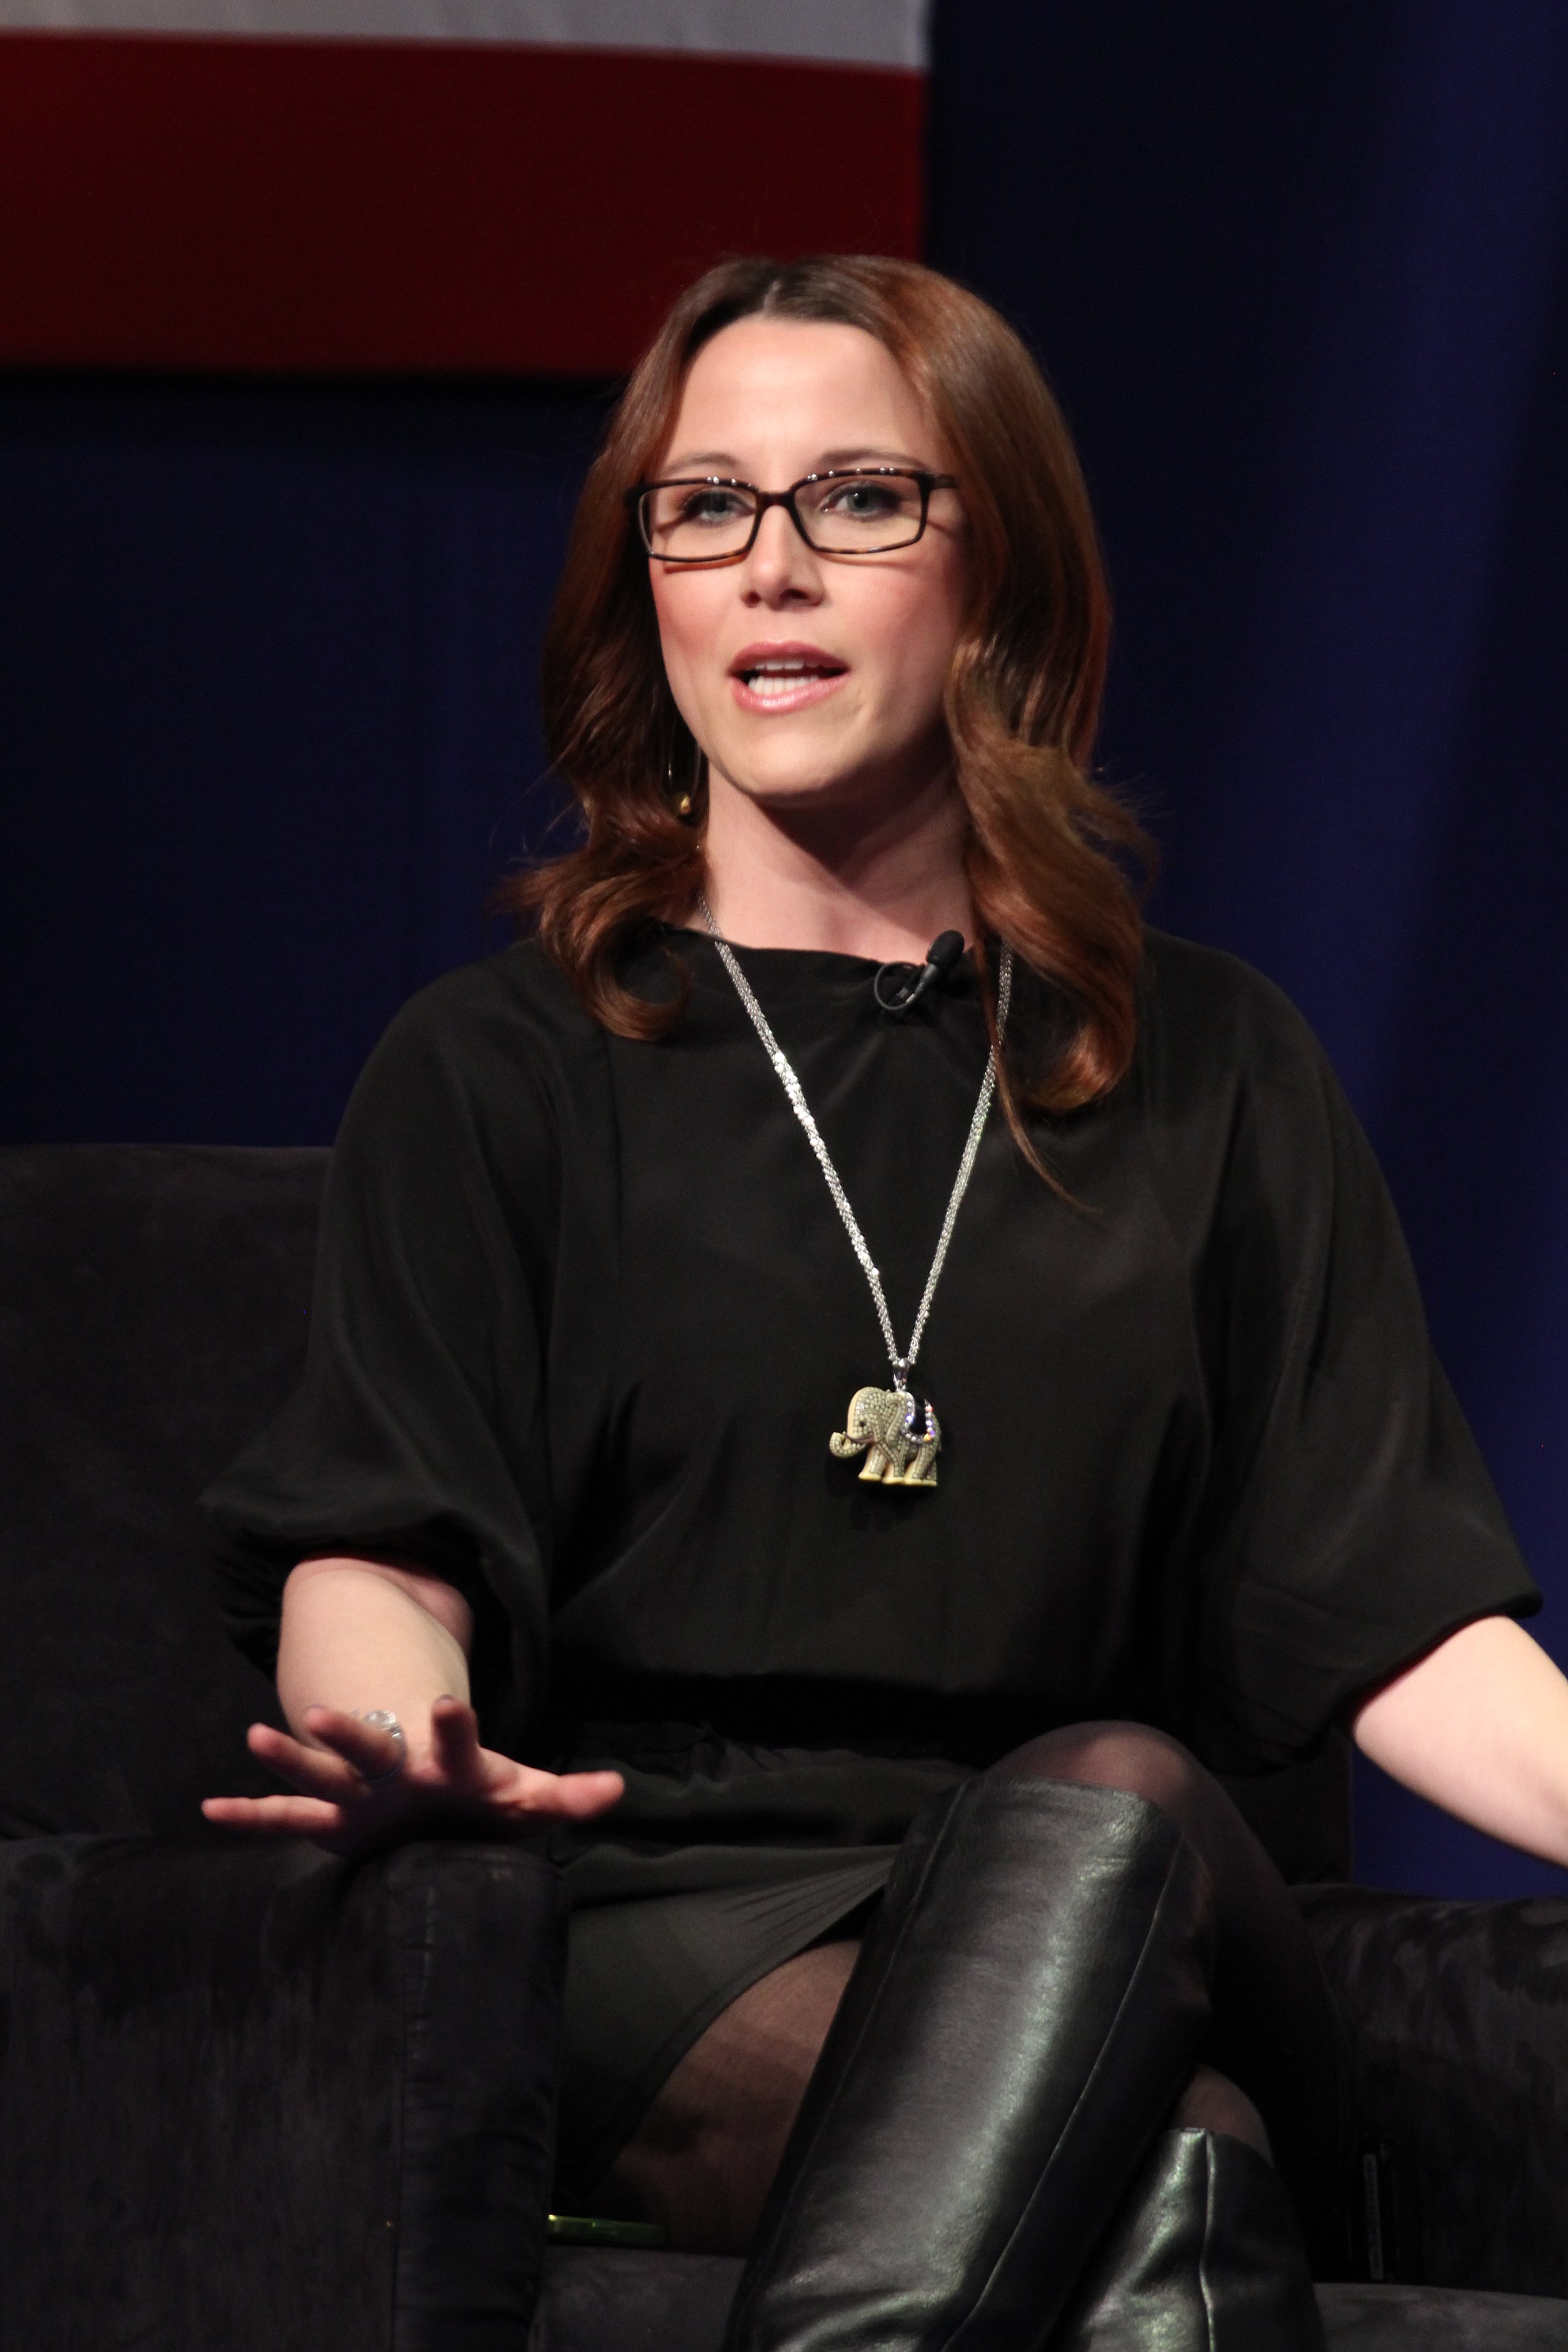 File:S.E. Cupp Speaking on a panel at CPAC 2012, UNEDITED. (6854524347).jpg - Wikimedia Commons